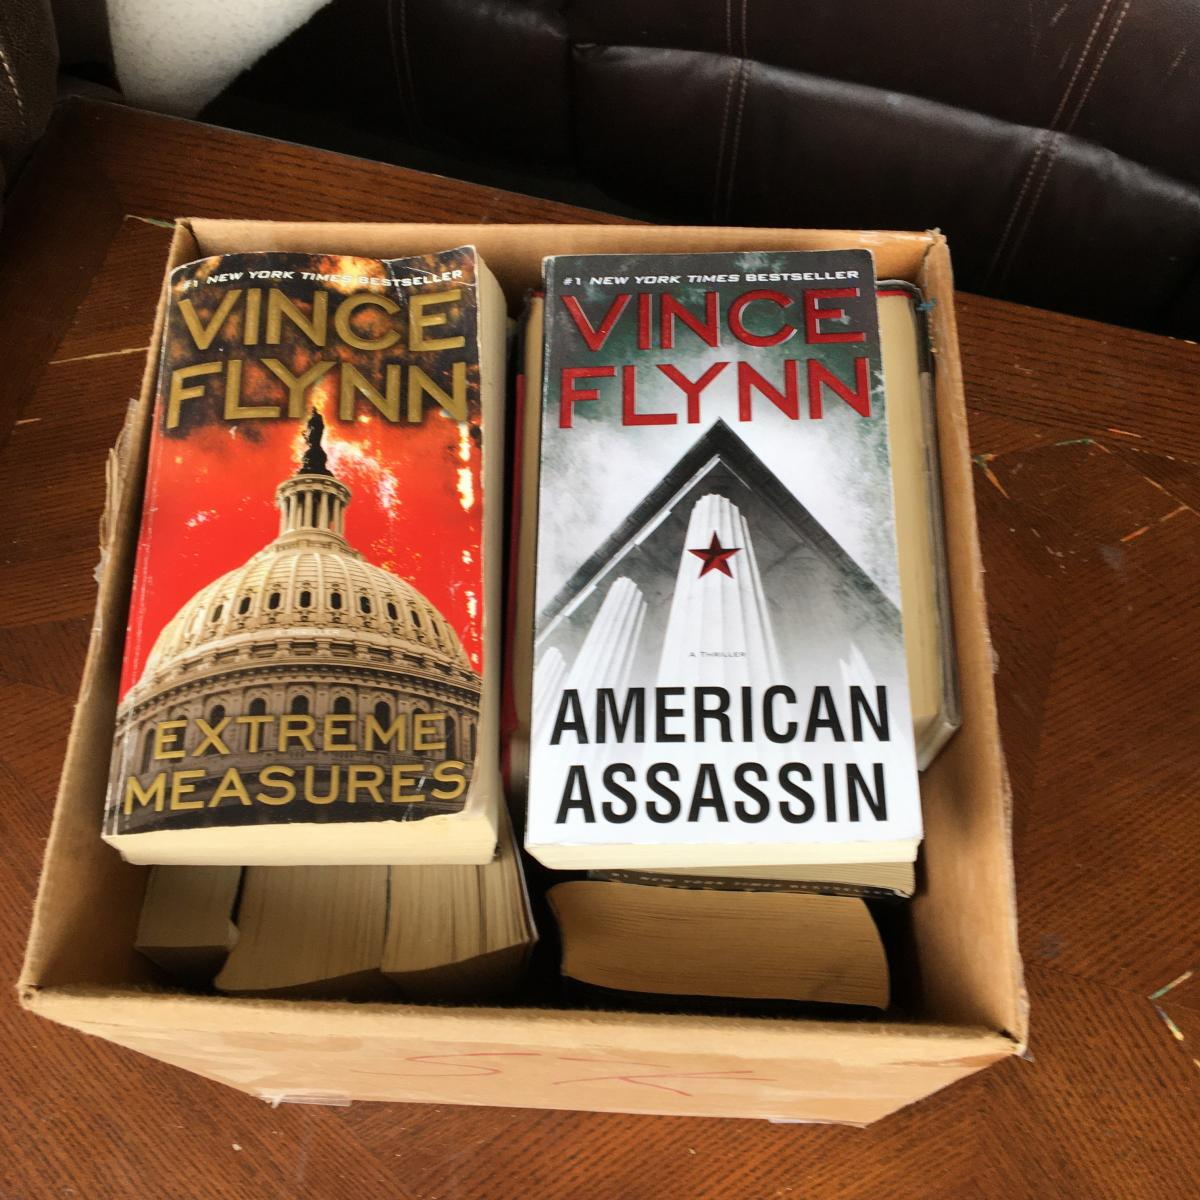 Photo 1 of American Assasin series